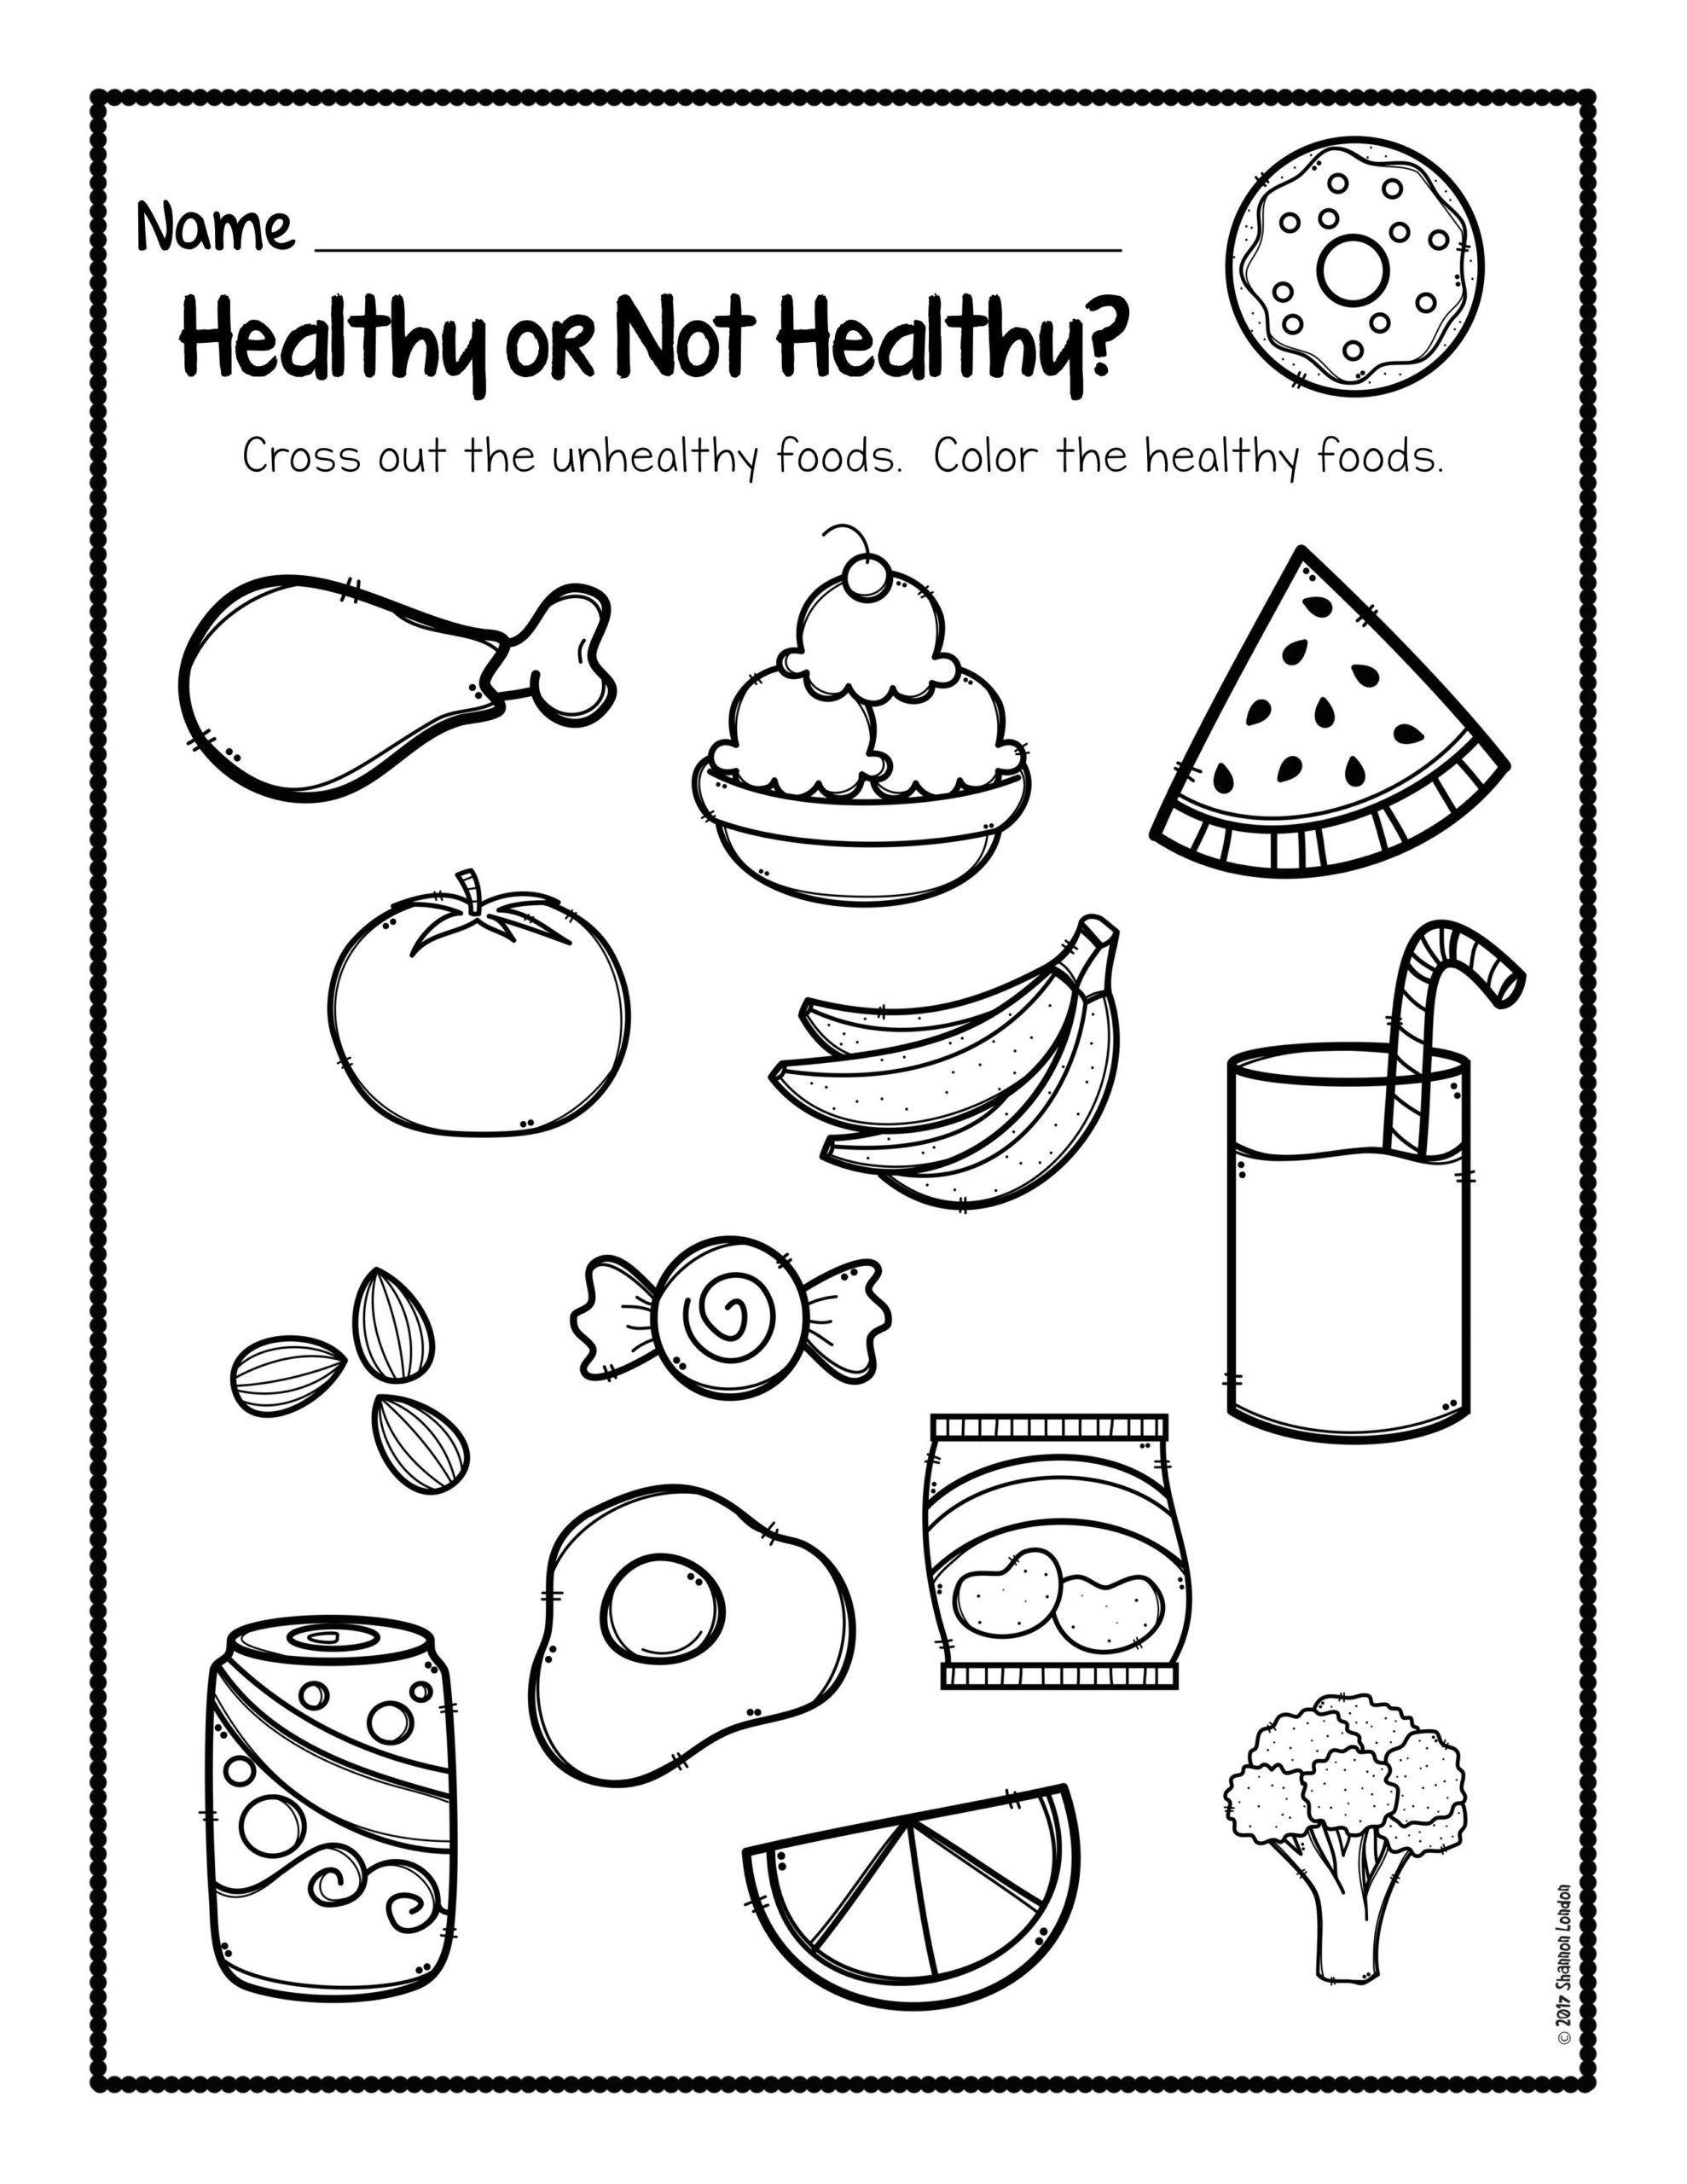 11 Readable 6th Grade Health Worksheets